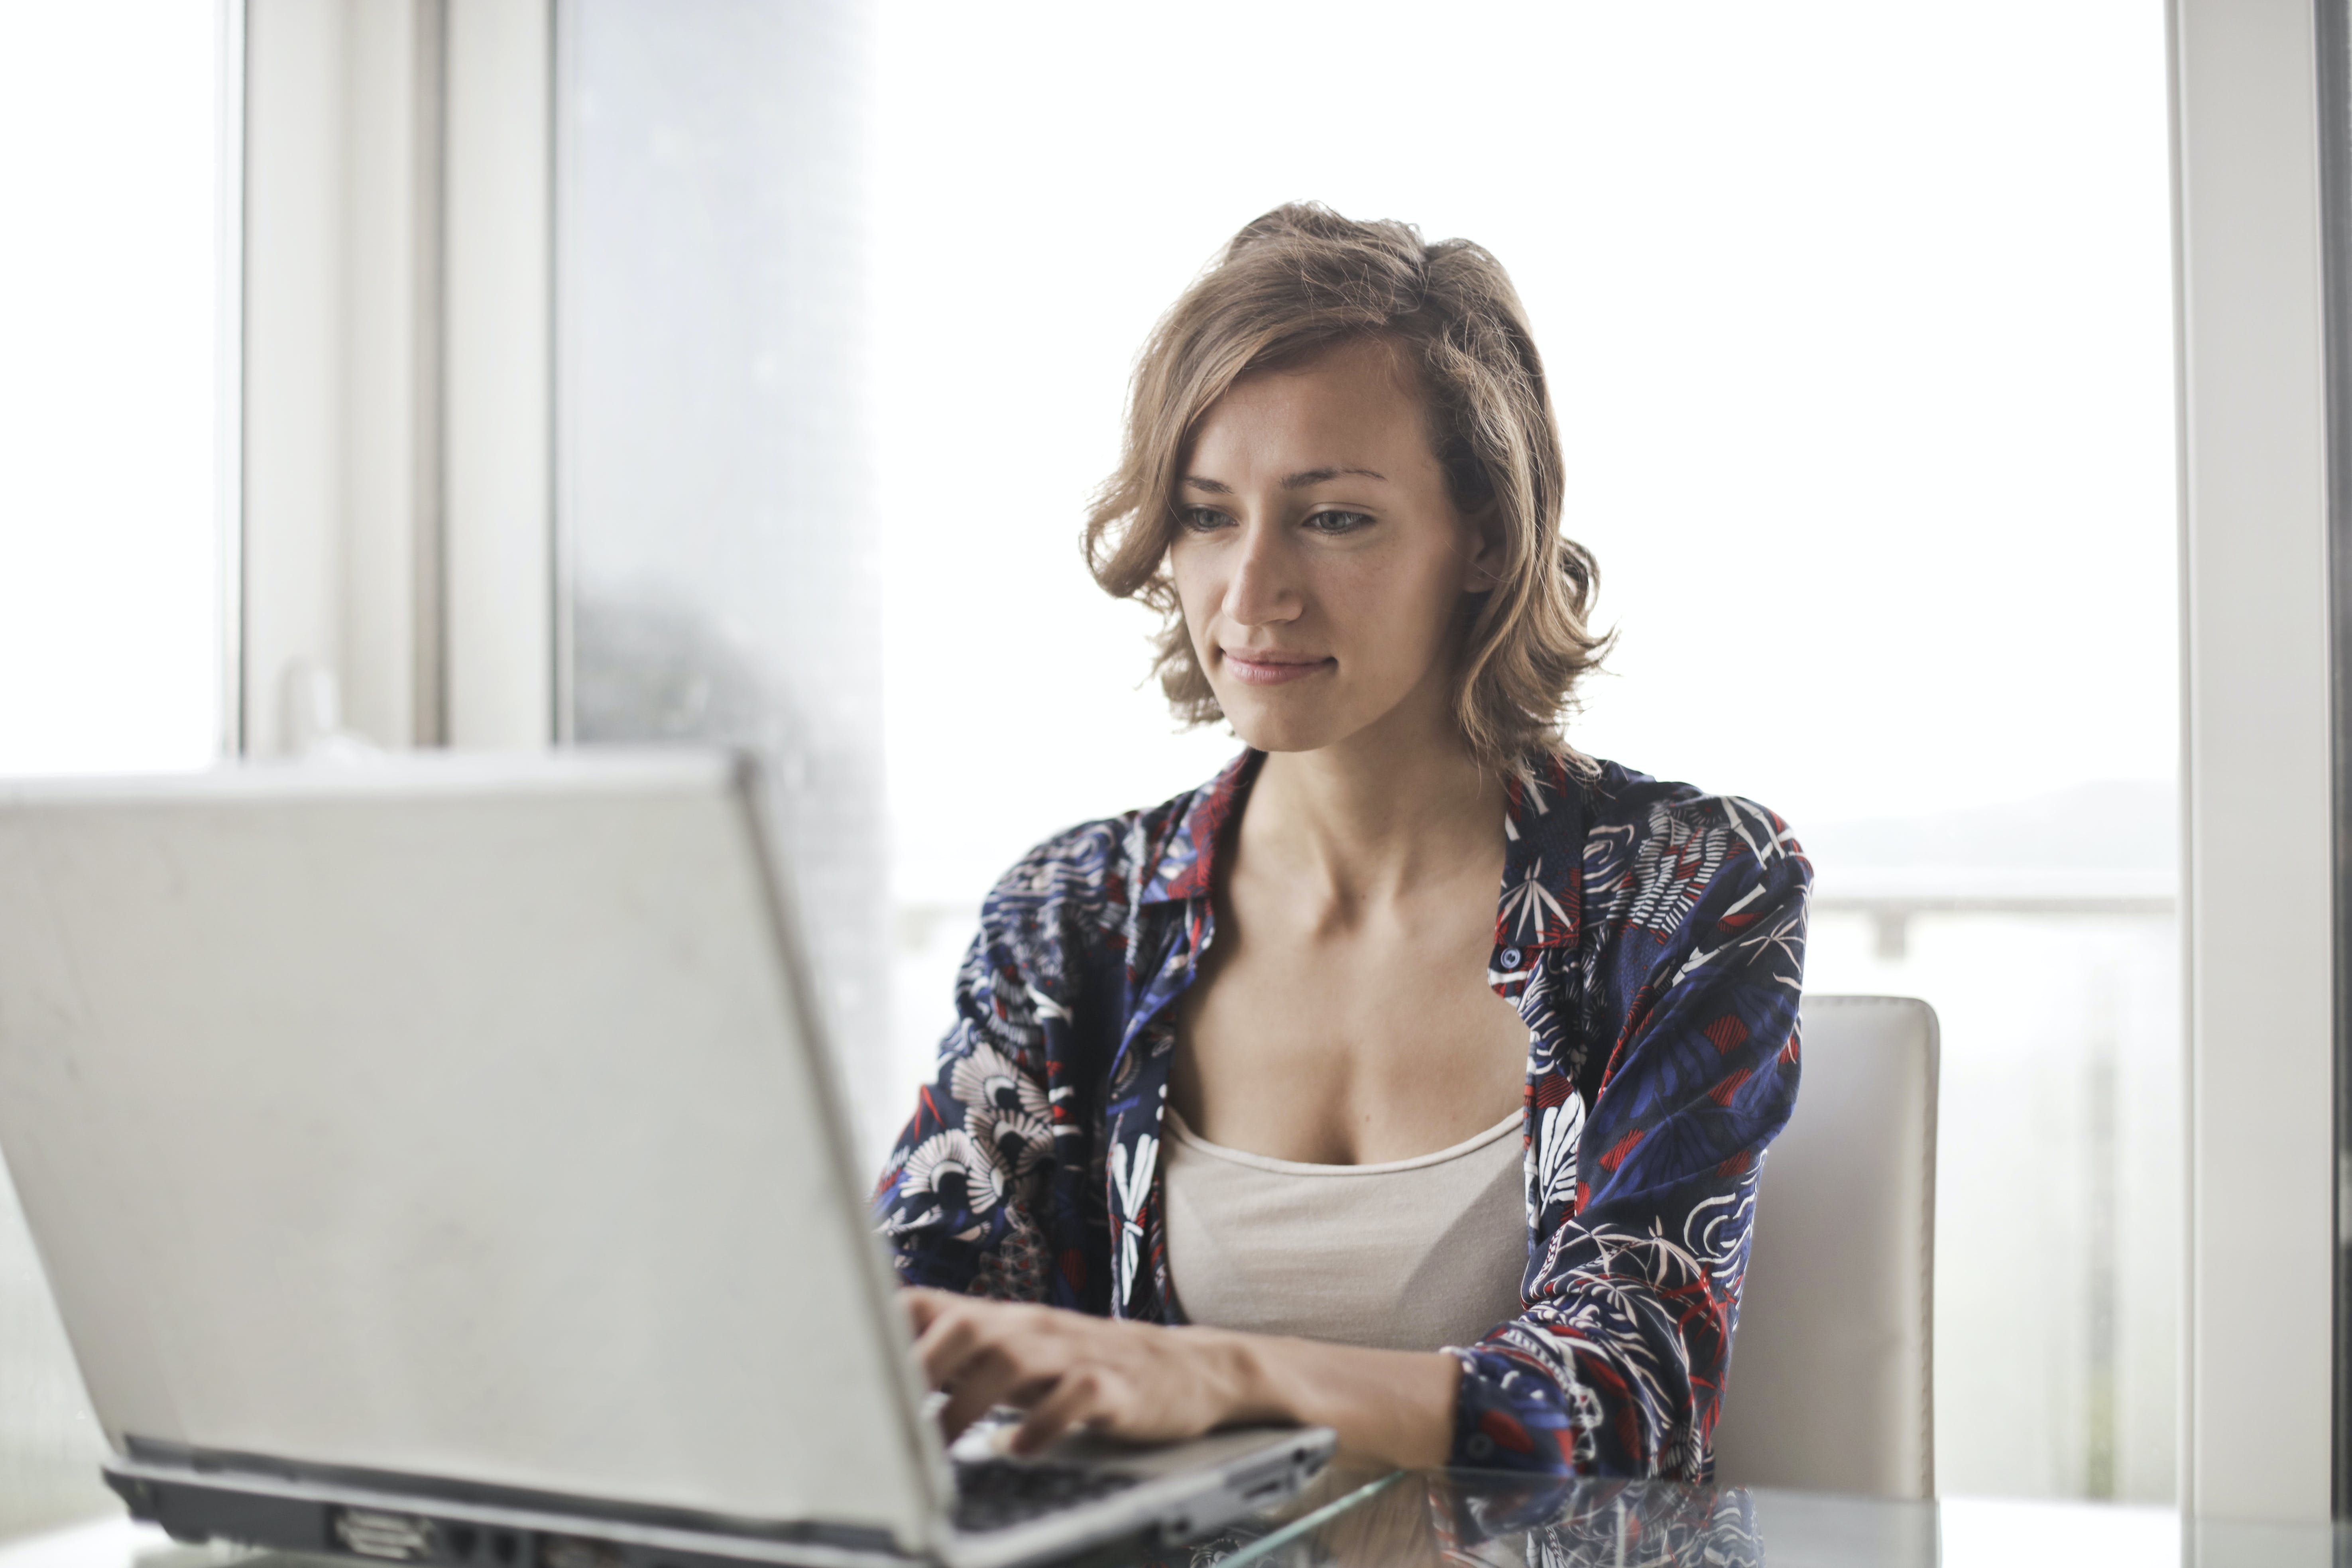 Woman in Blue Floral Top Sitting While Using Laptop